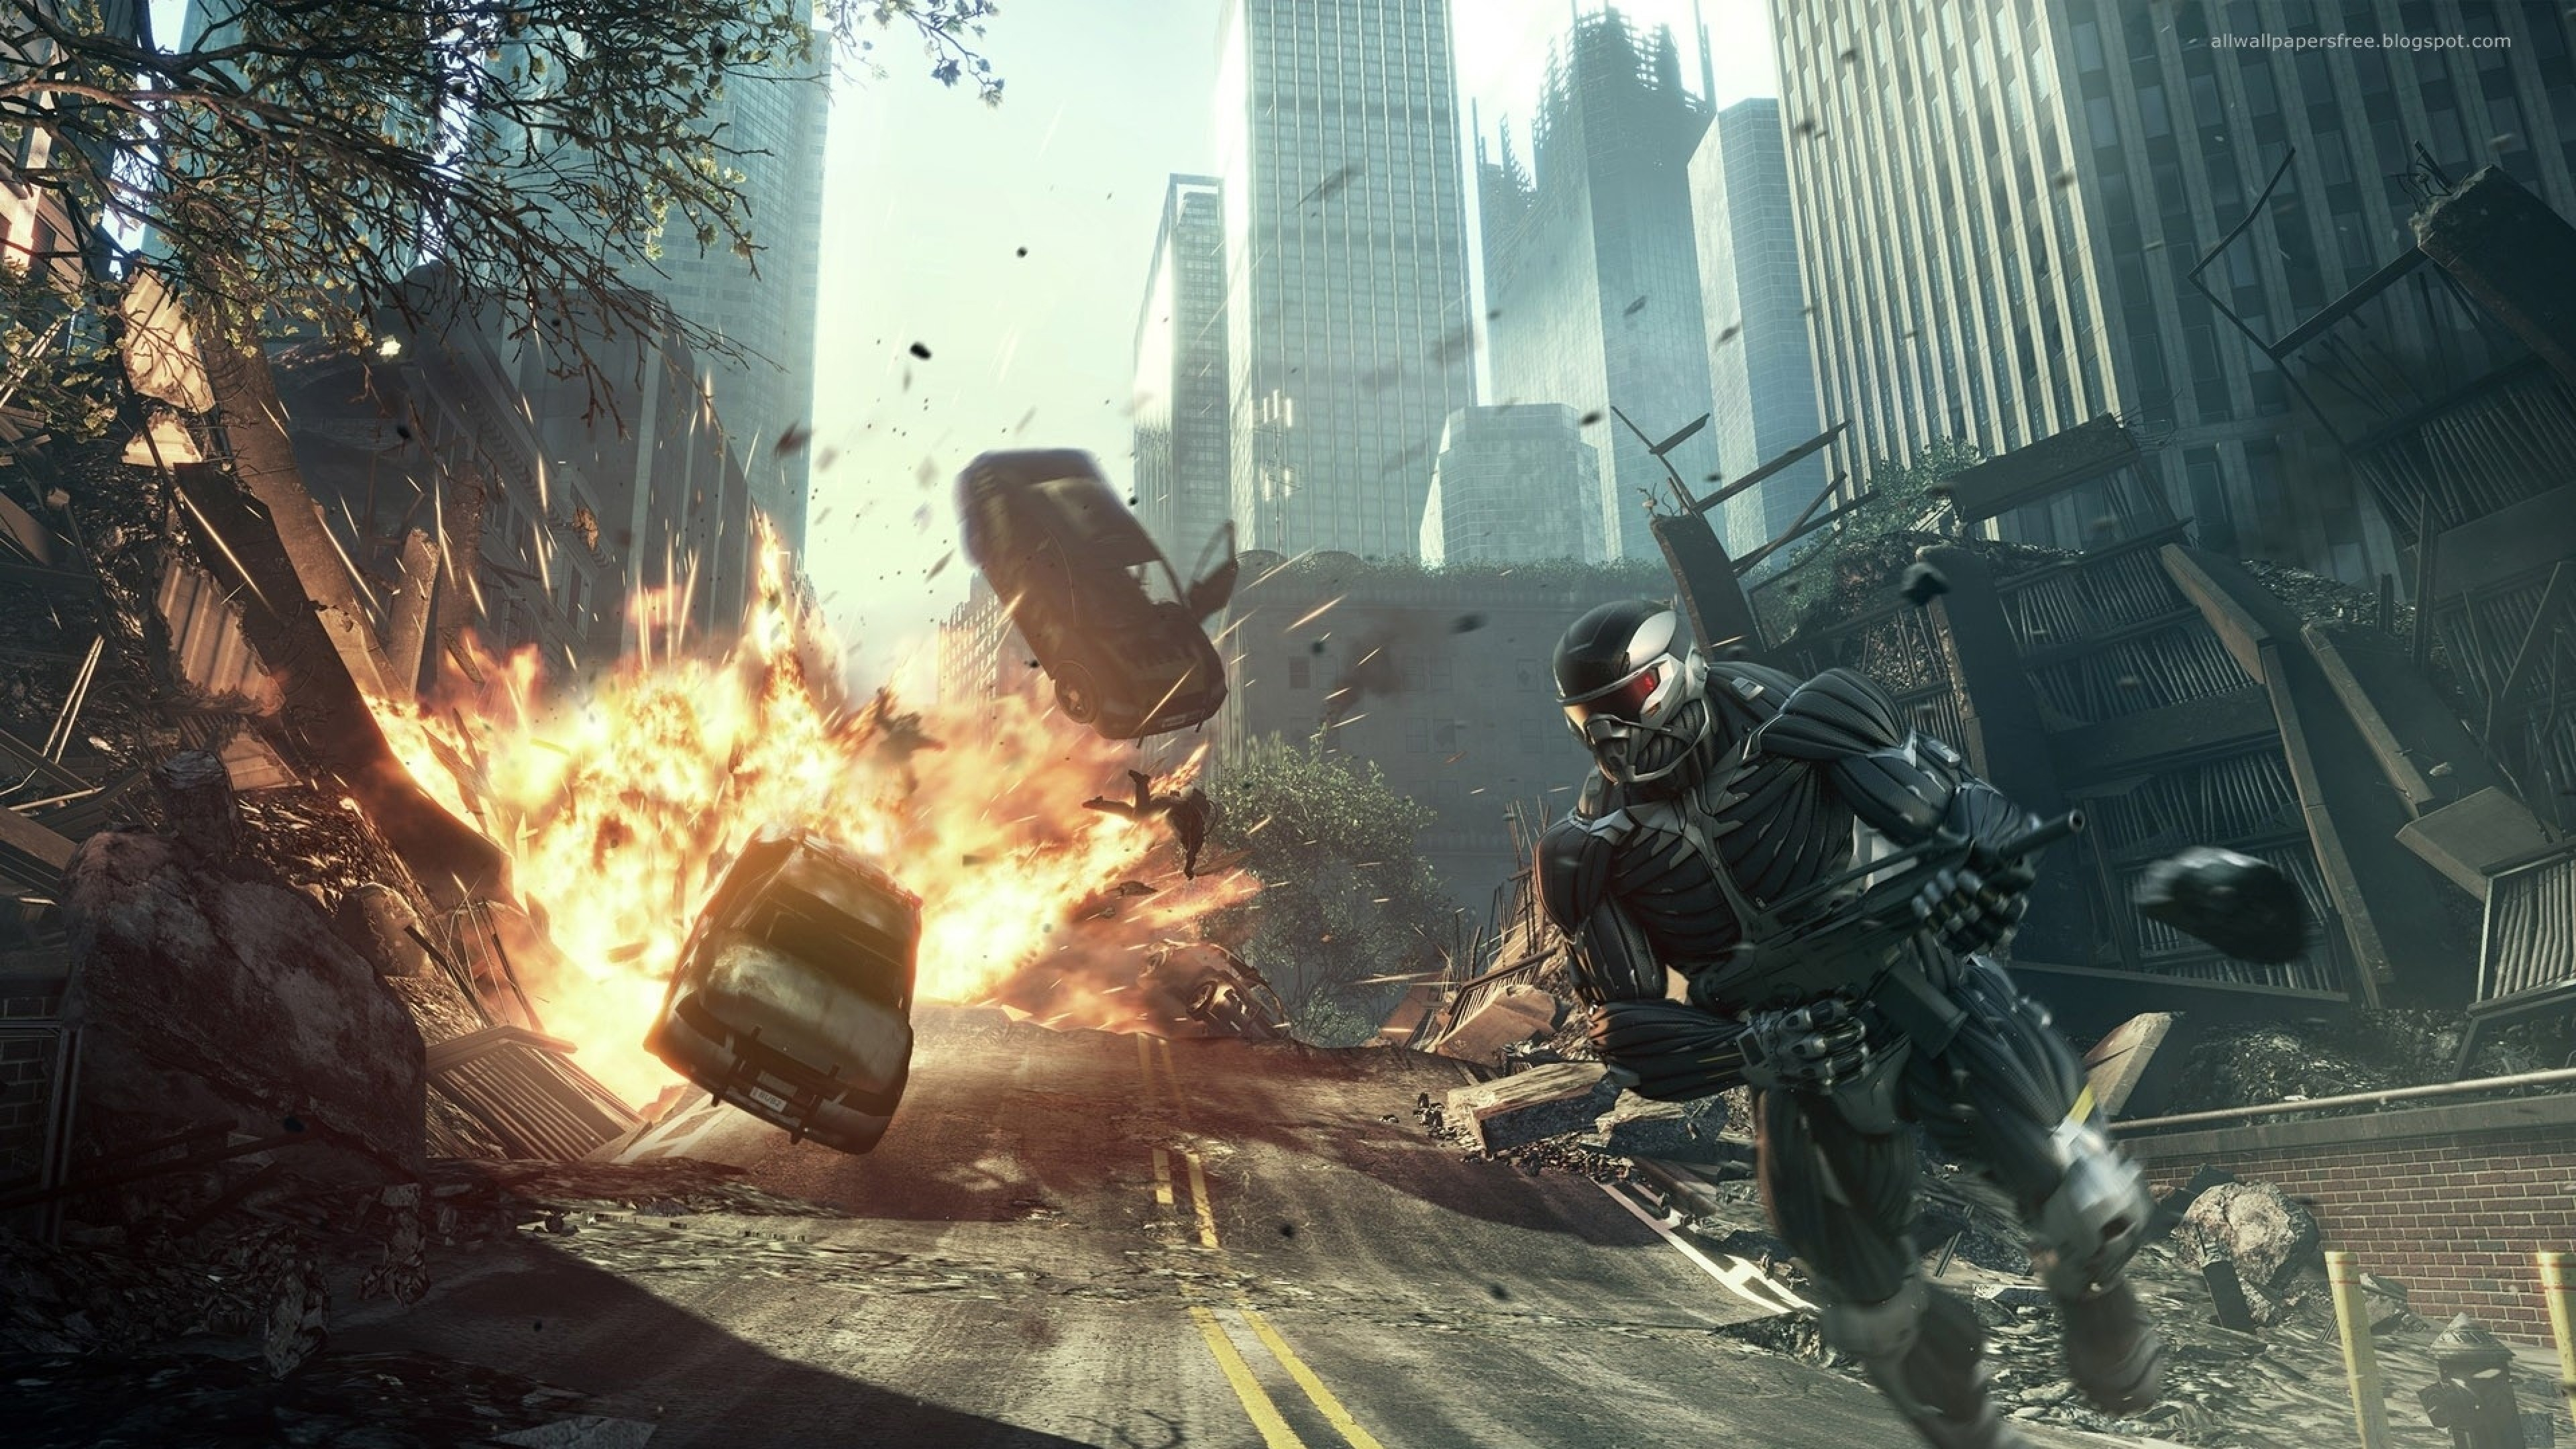 3840x2160 Preview wallpaper crysis, road, explosion, car, city, alcatraz